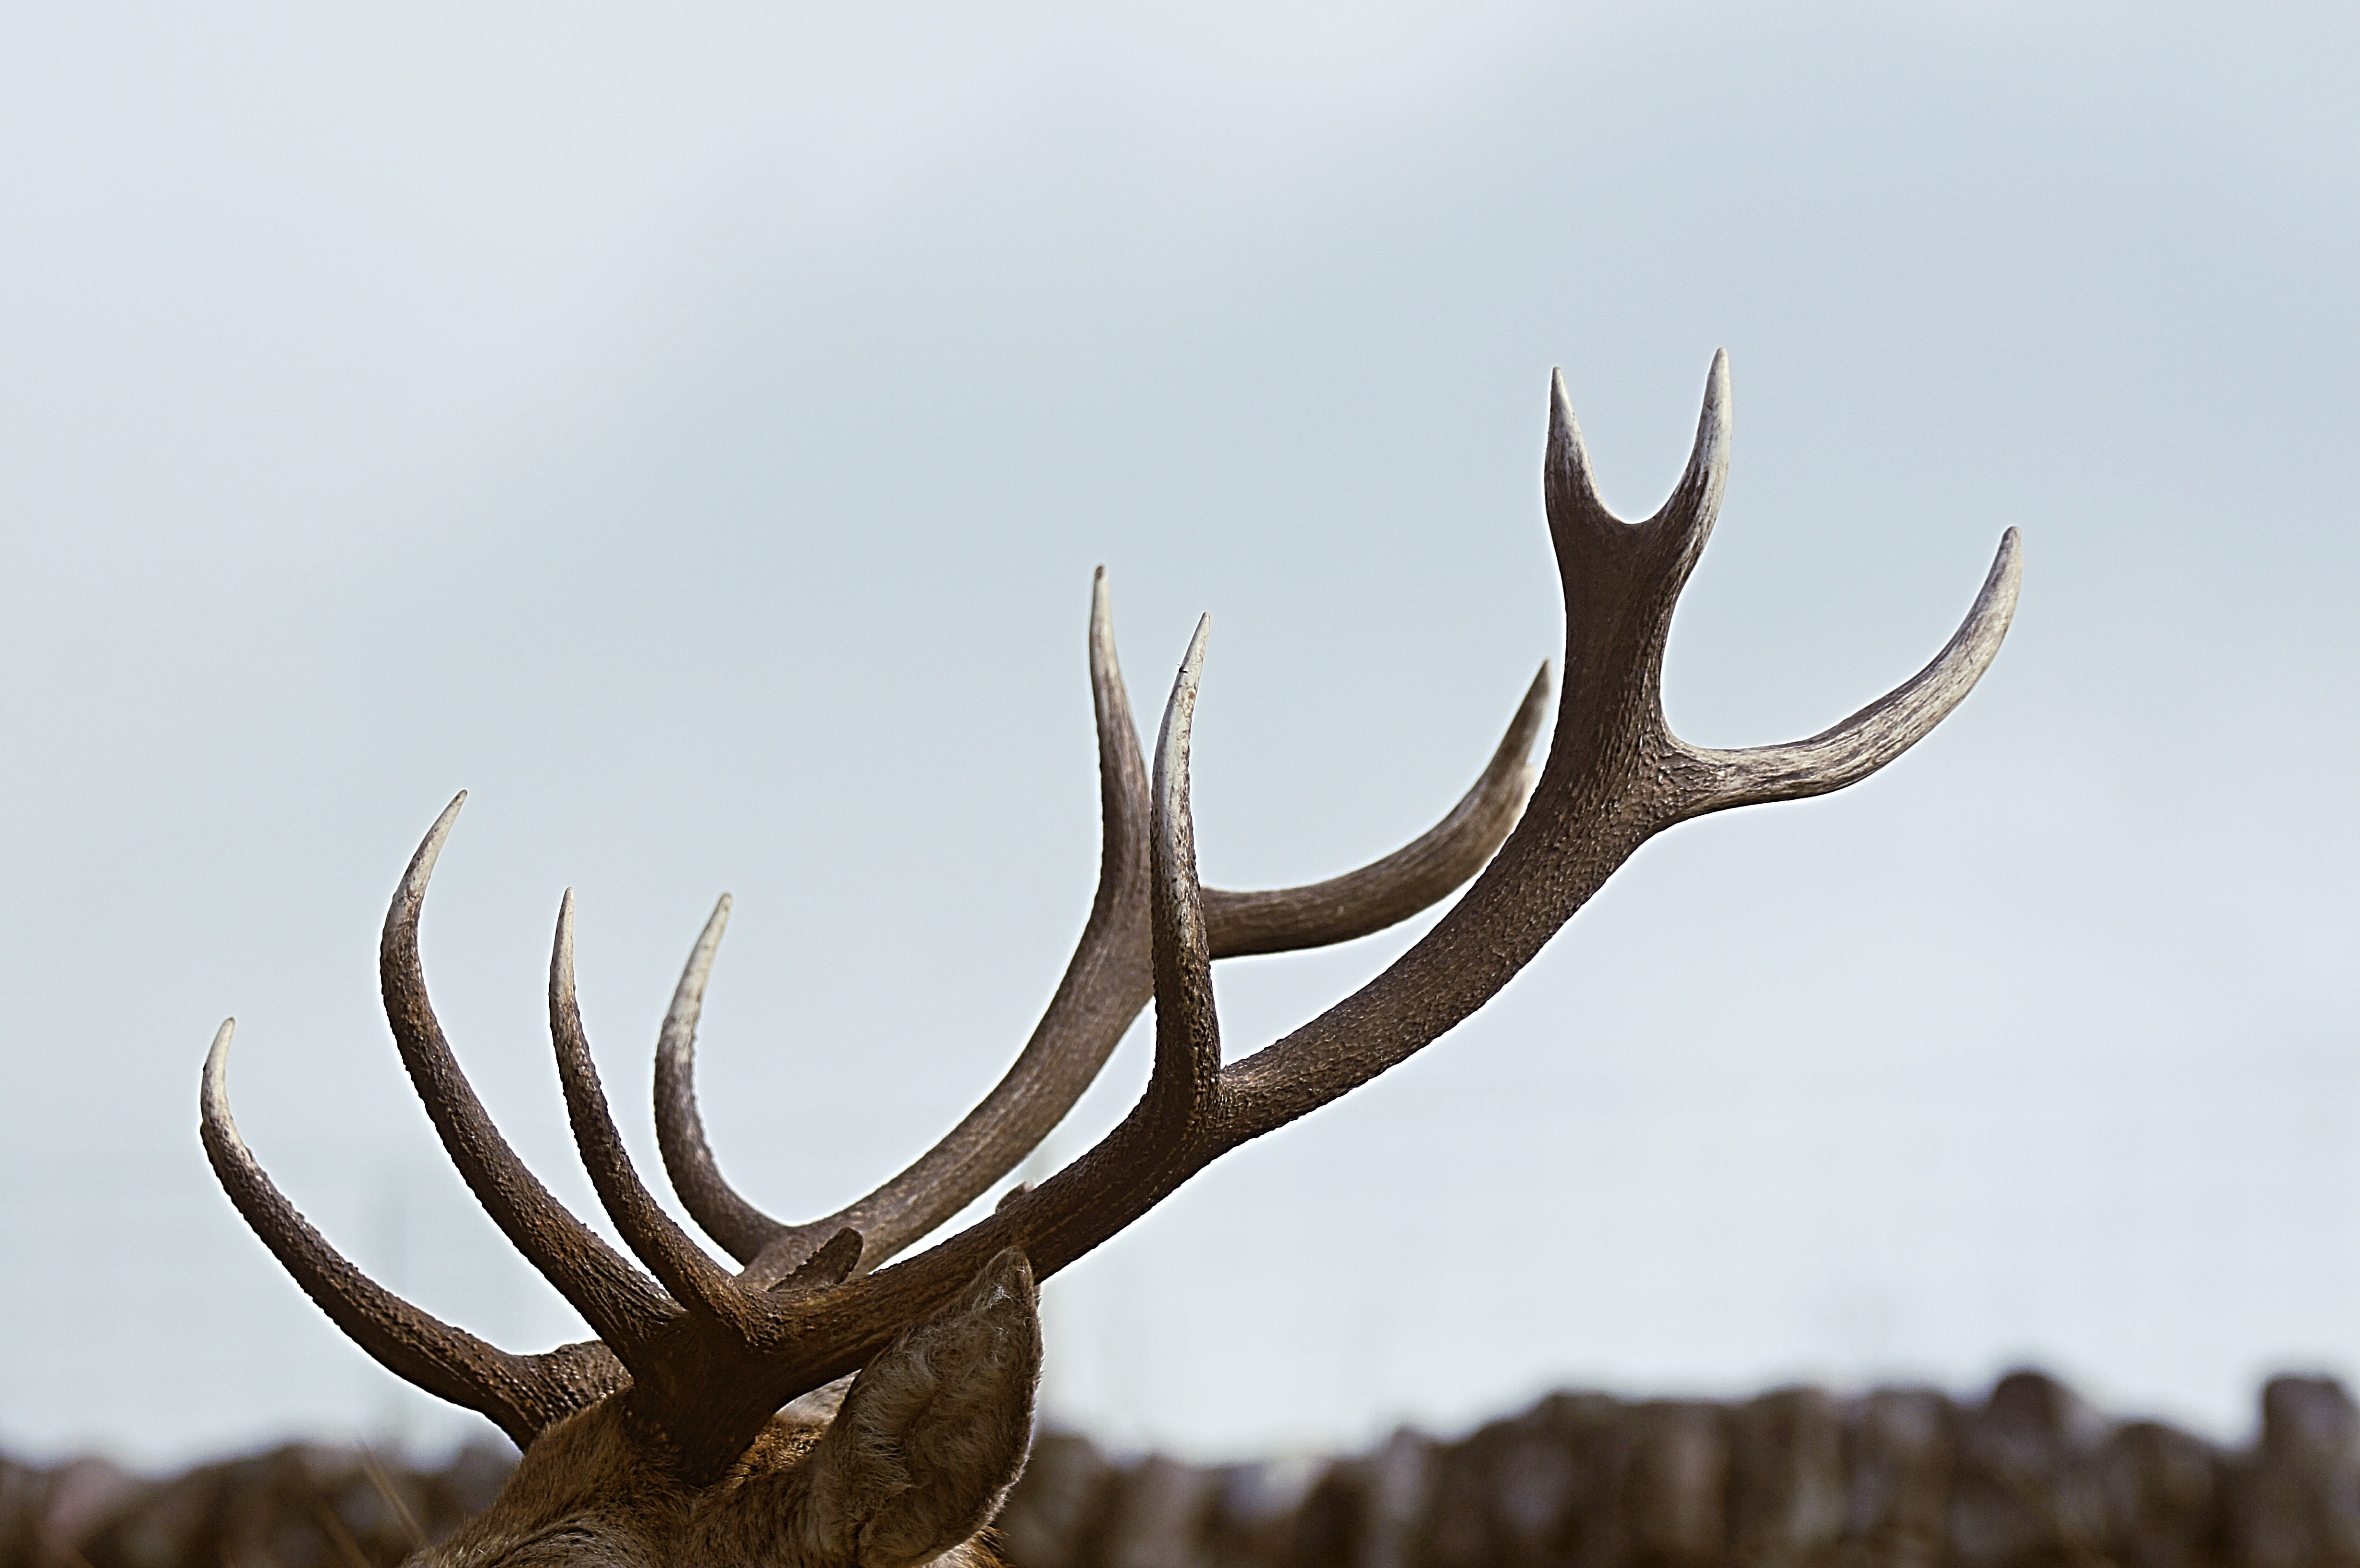 close-up photo of antler during daytime